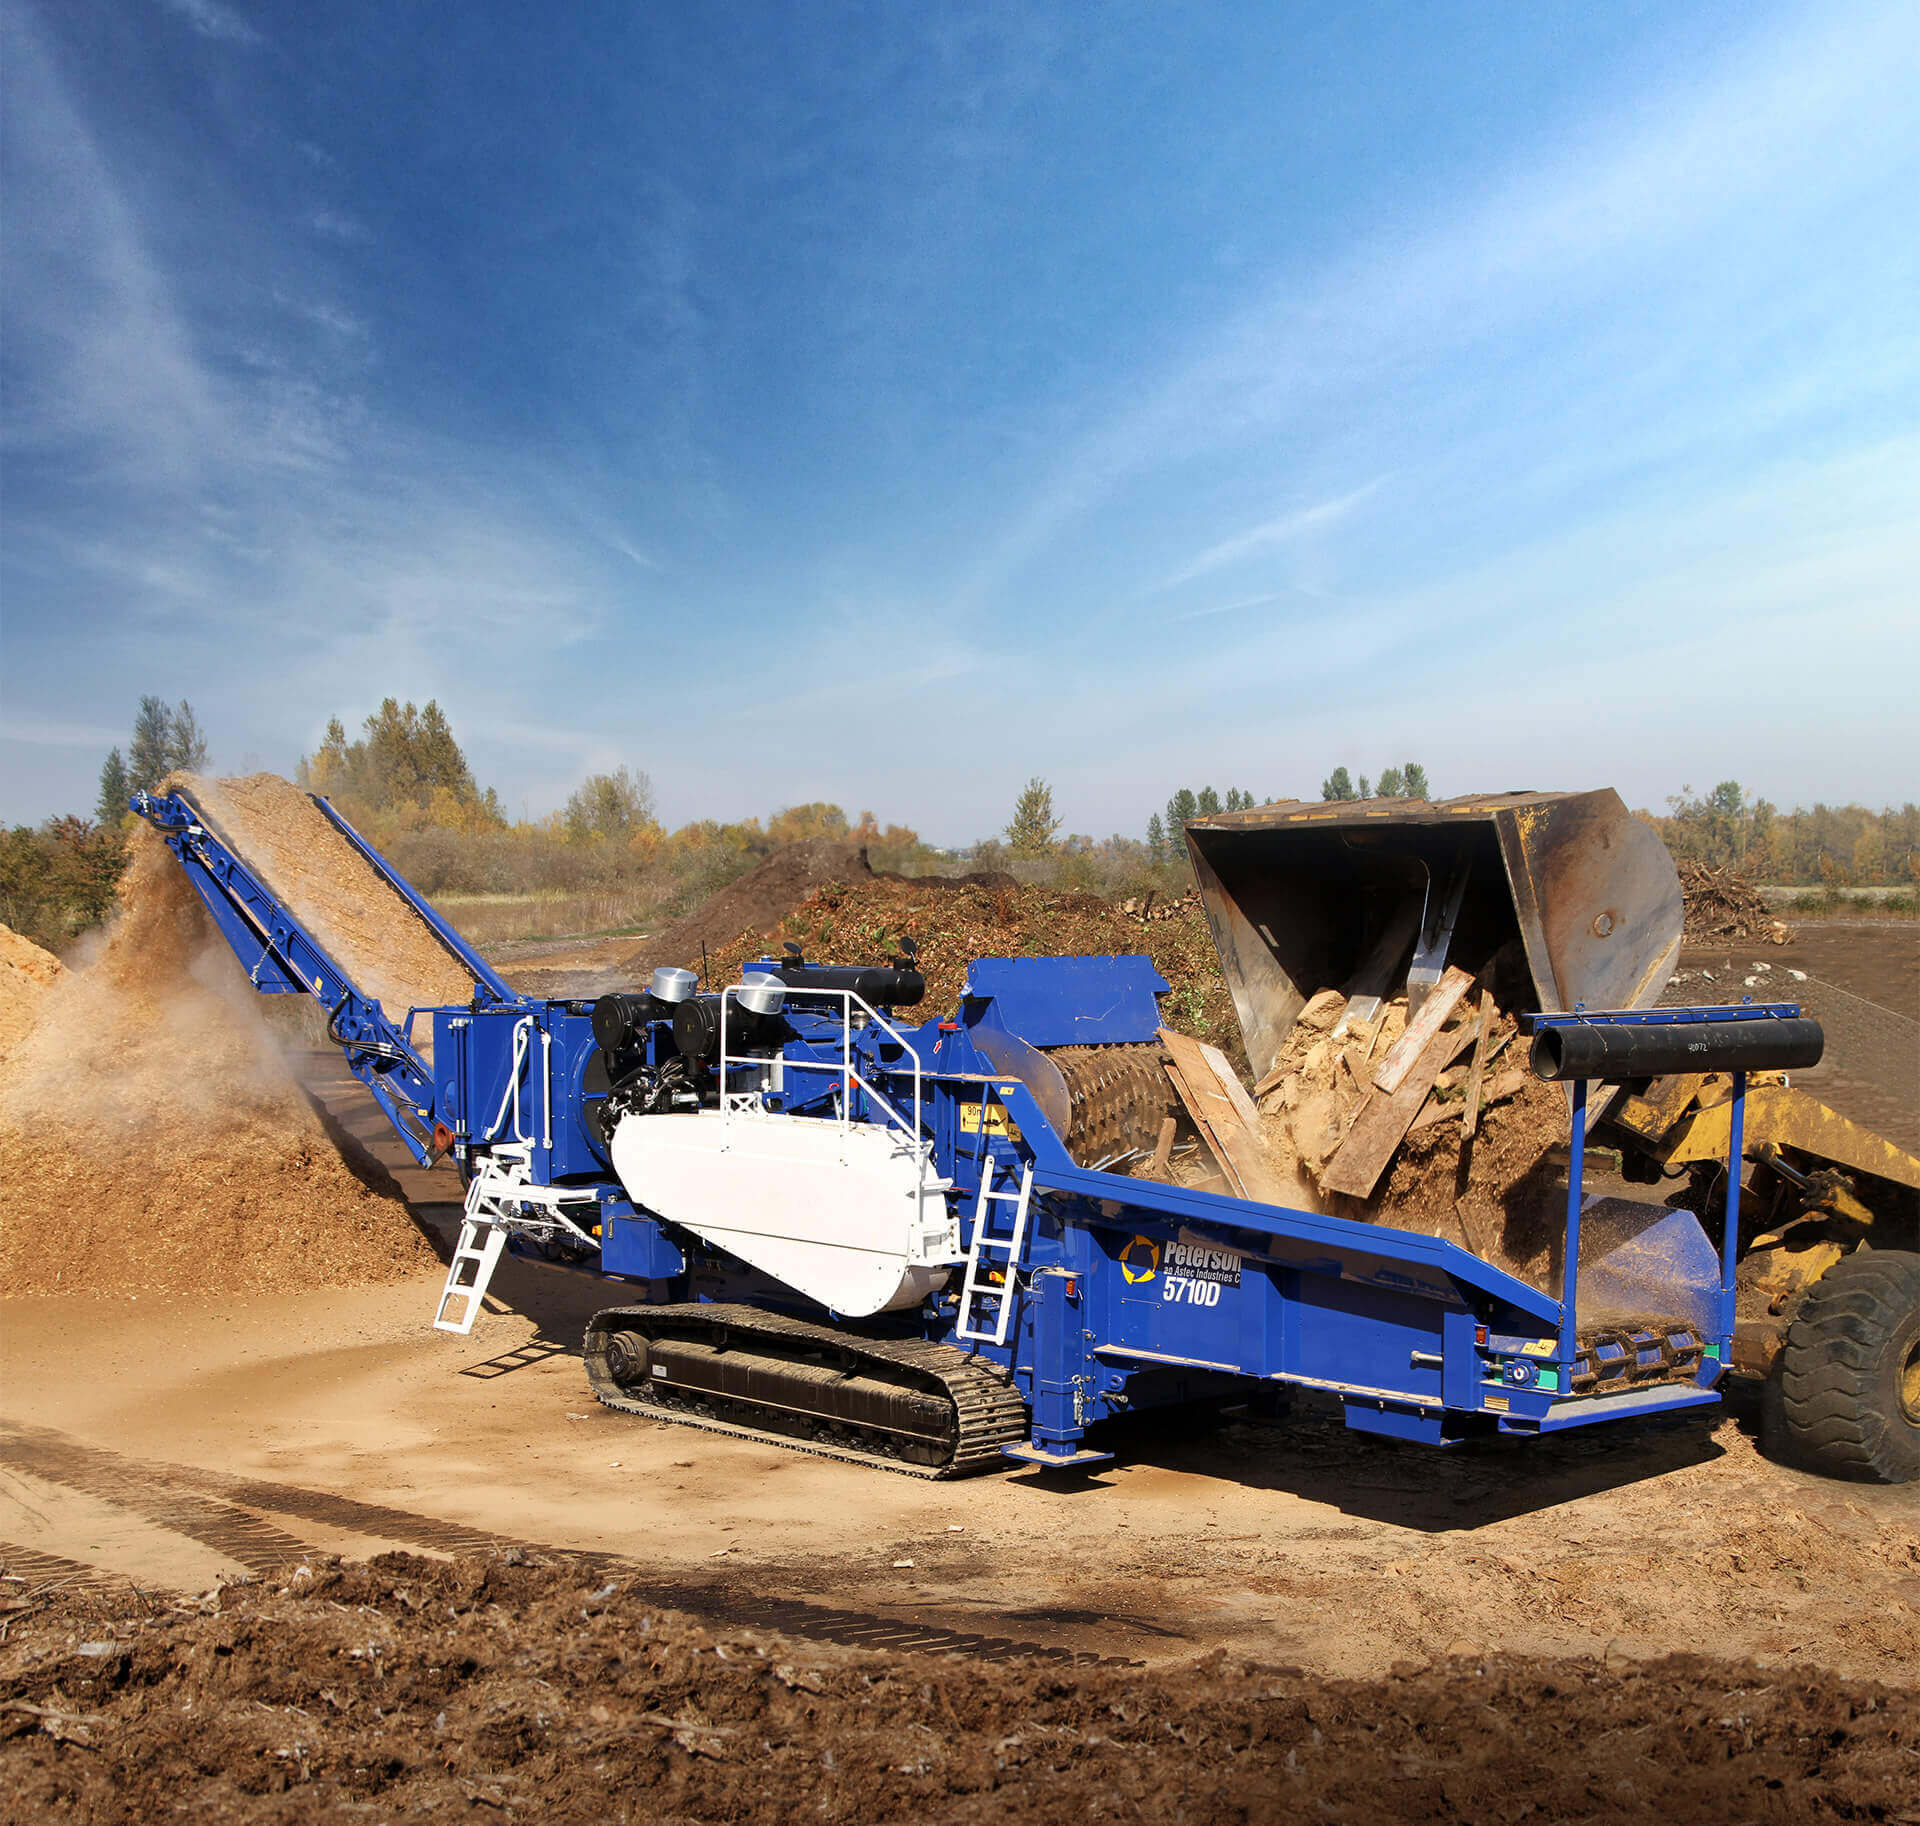 Astec Peterson Horizontal Grinder making mulch from scrap lumber and wood waste while being loaded by a front end loader.